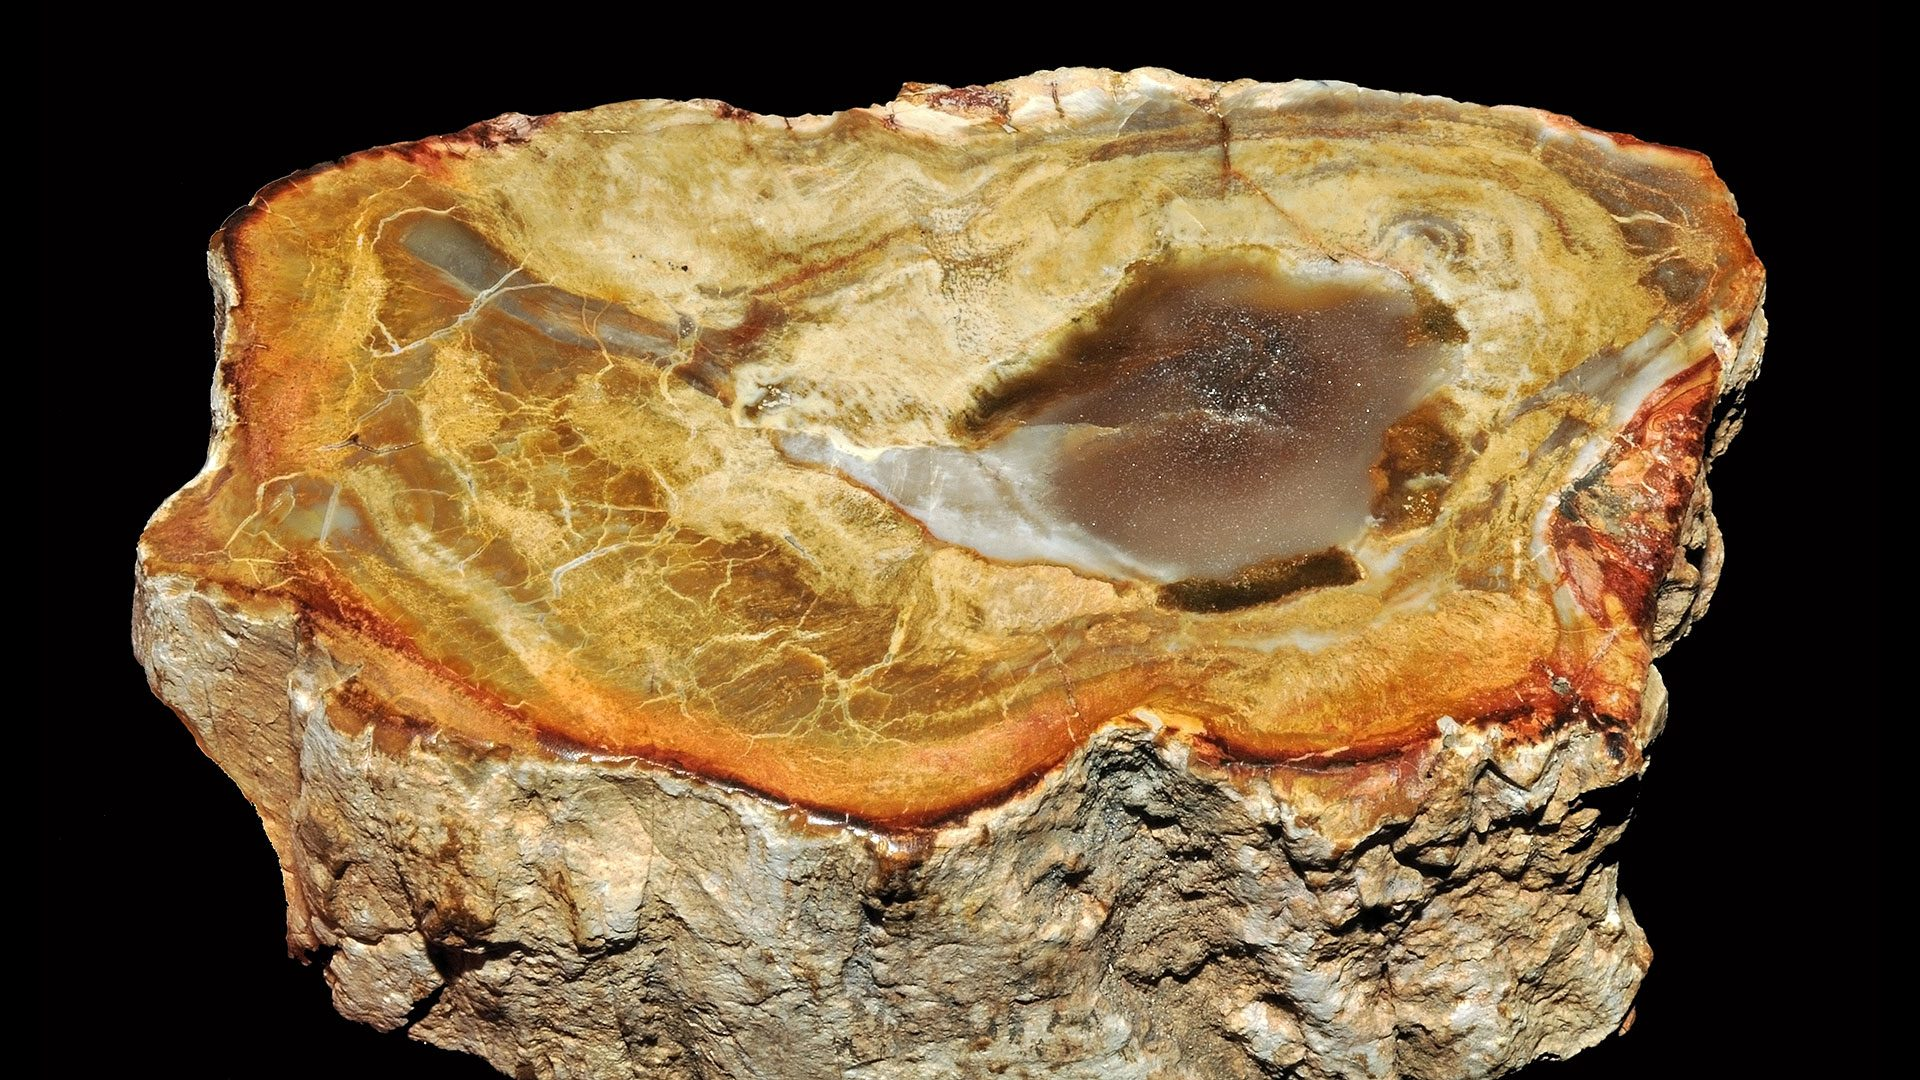 Petrified Wood Specimen - Original Photograph by Parent Géry